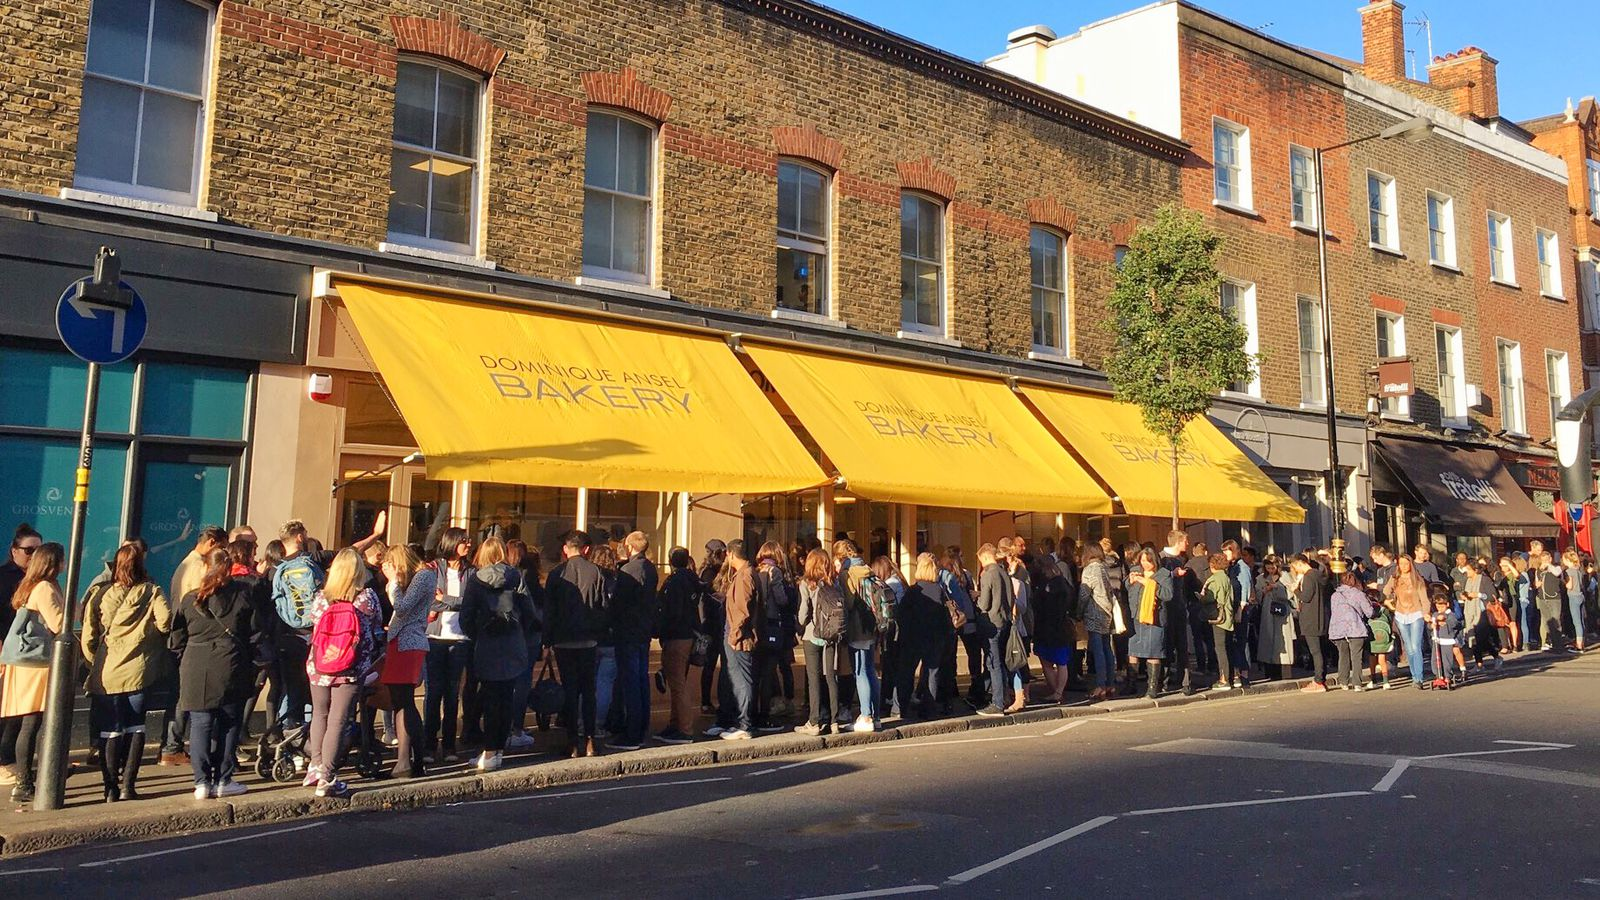 dominique ansel london opens to a line of 200 cronut